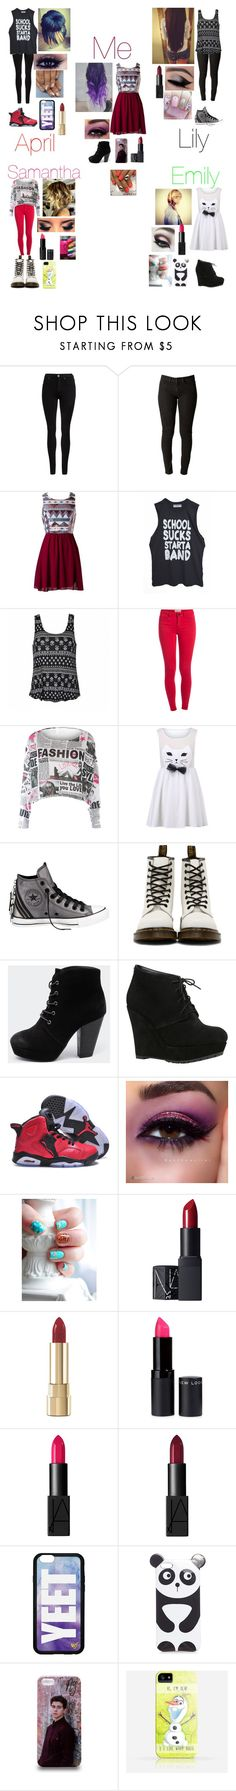 """""""Me an my band mates outfit for are meet and greet with are fans"""" by nikolestyles ❤ liked on Polyvore featuring Dr. Denim, Ally Fashion, Pieces, Converse, Dr. Martens, Therapy, ALDO, NIKE, Disney and NARS Cosmetics"""